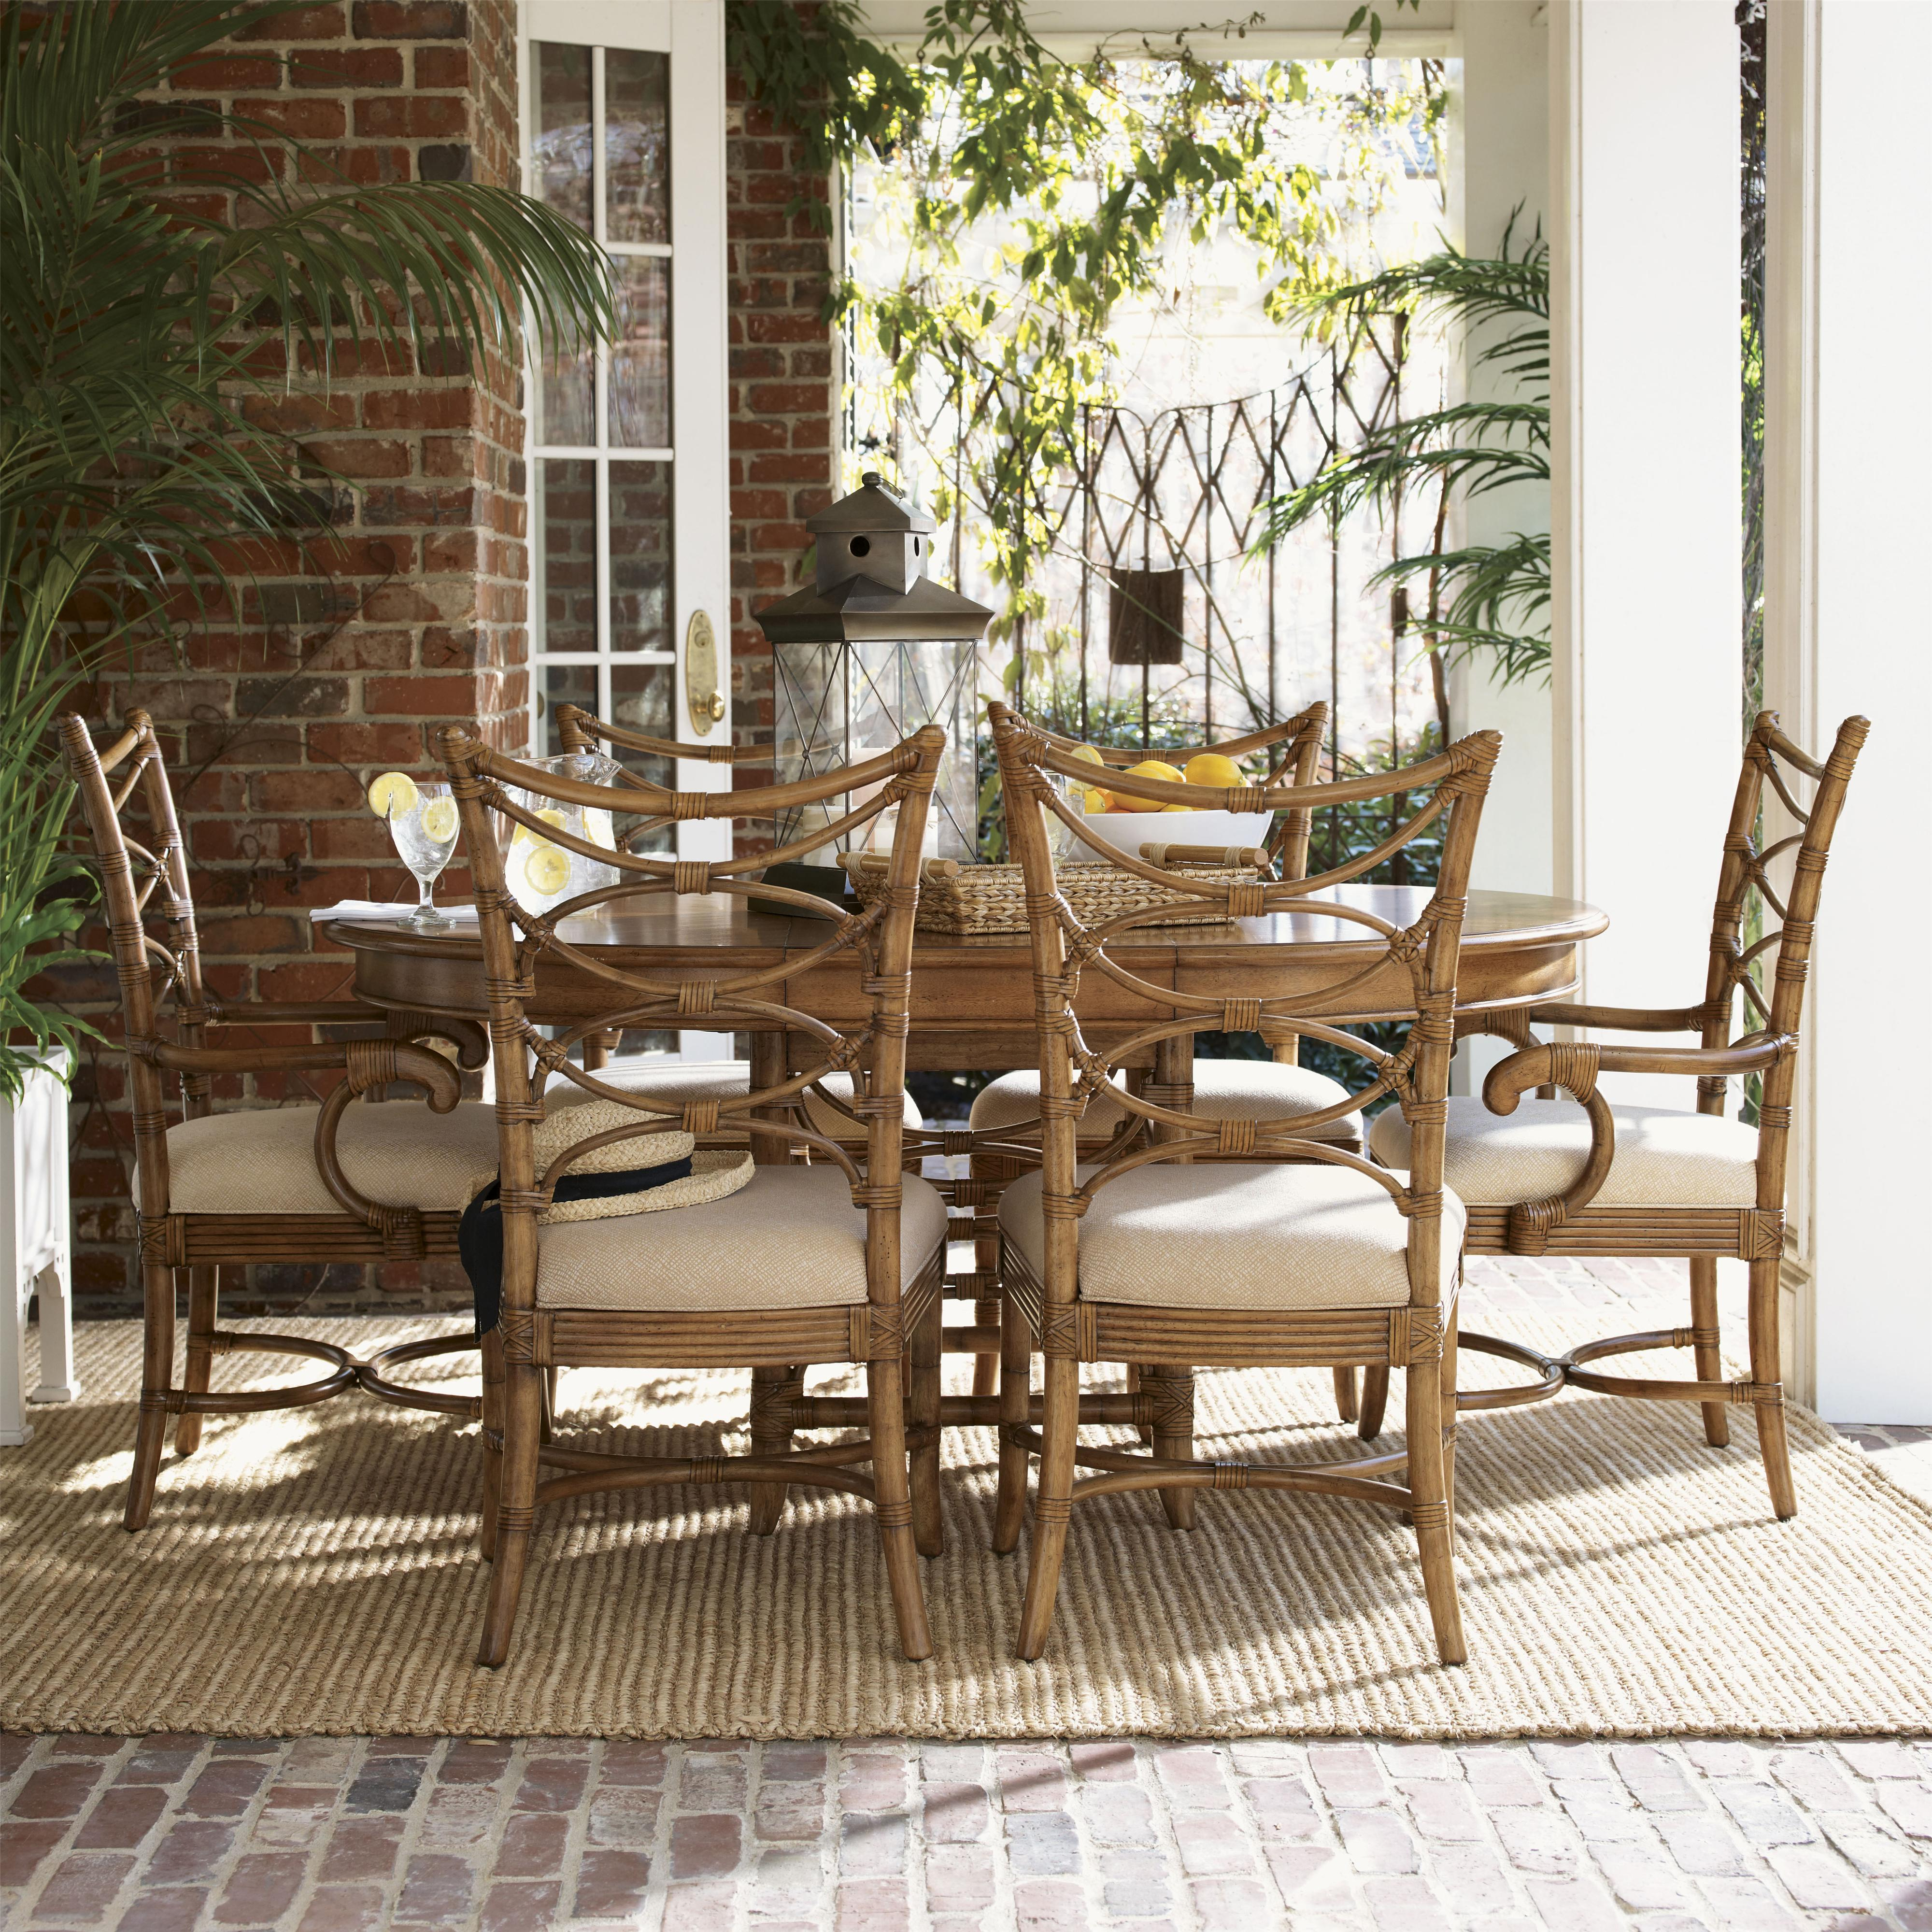 Tommy Bahama Dining Room Furniture: Beach House (540) By Tommy Bahama Home